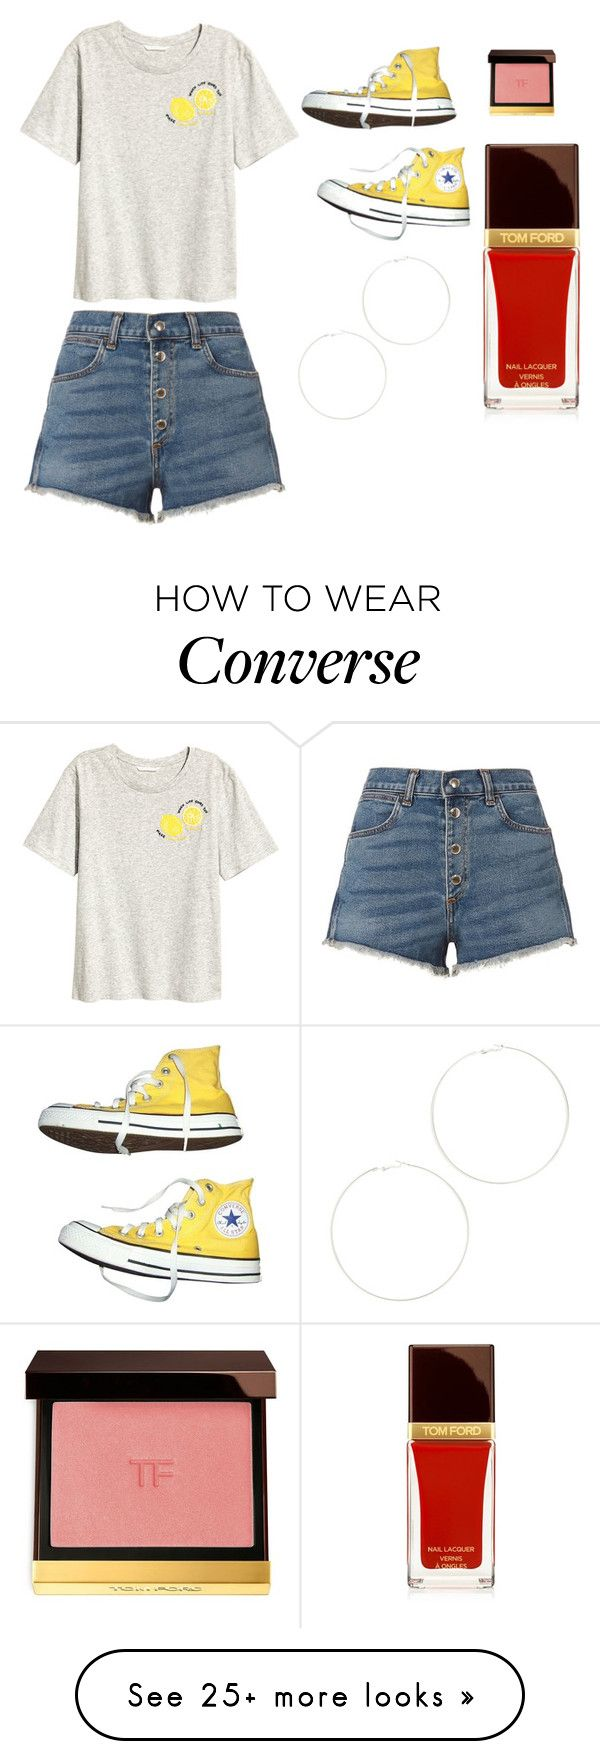 """""""Sans titre #6368"""" by merveille67120 on Polyvore featuring rag & bone, Converse, Kenneth Jay Lane and Tom Ford"""